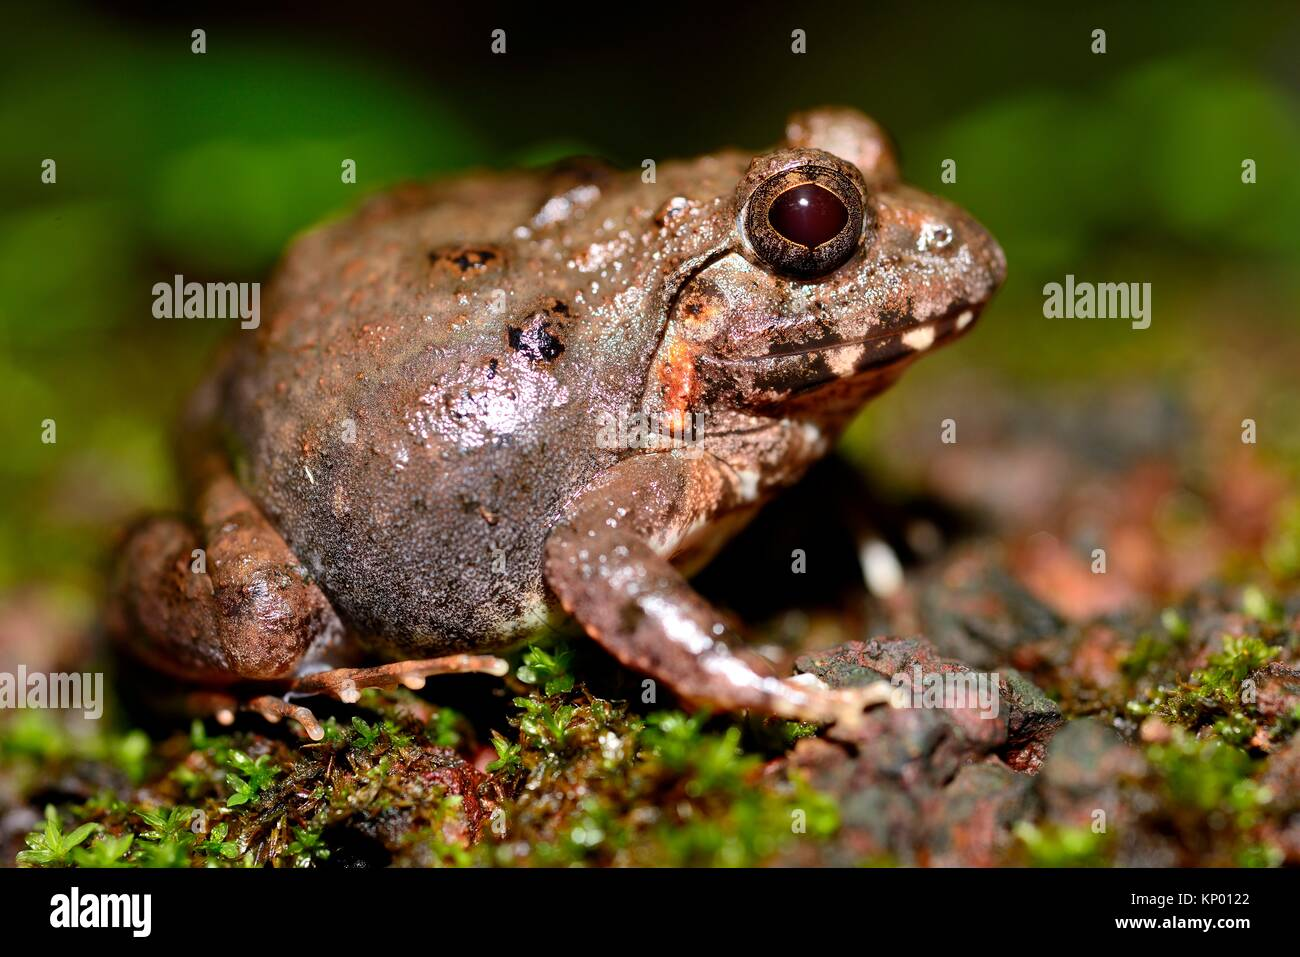 Indian burrowing frog (Sphaerotheca breviceps) in Cotigao sanctuary, Goa, India - Stock Image